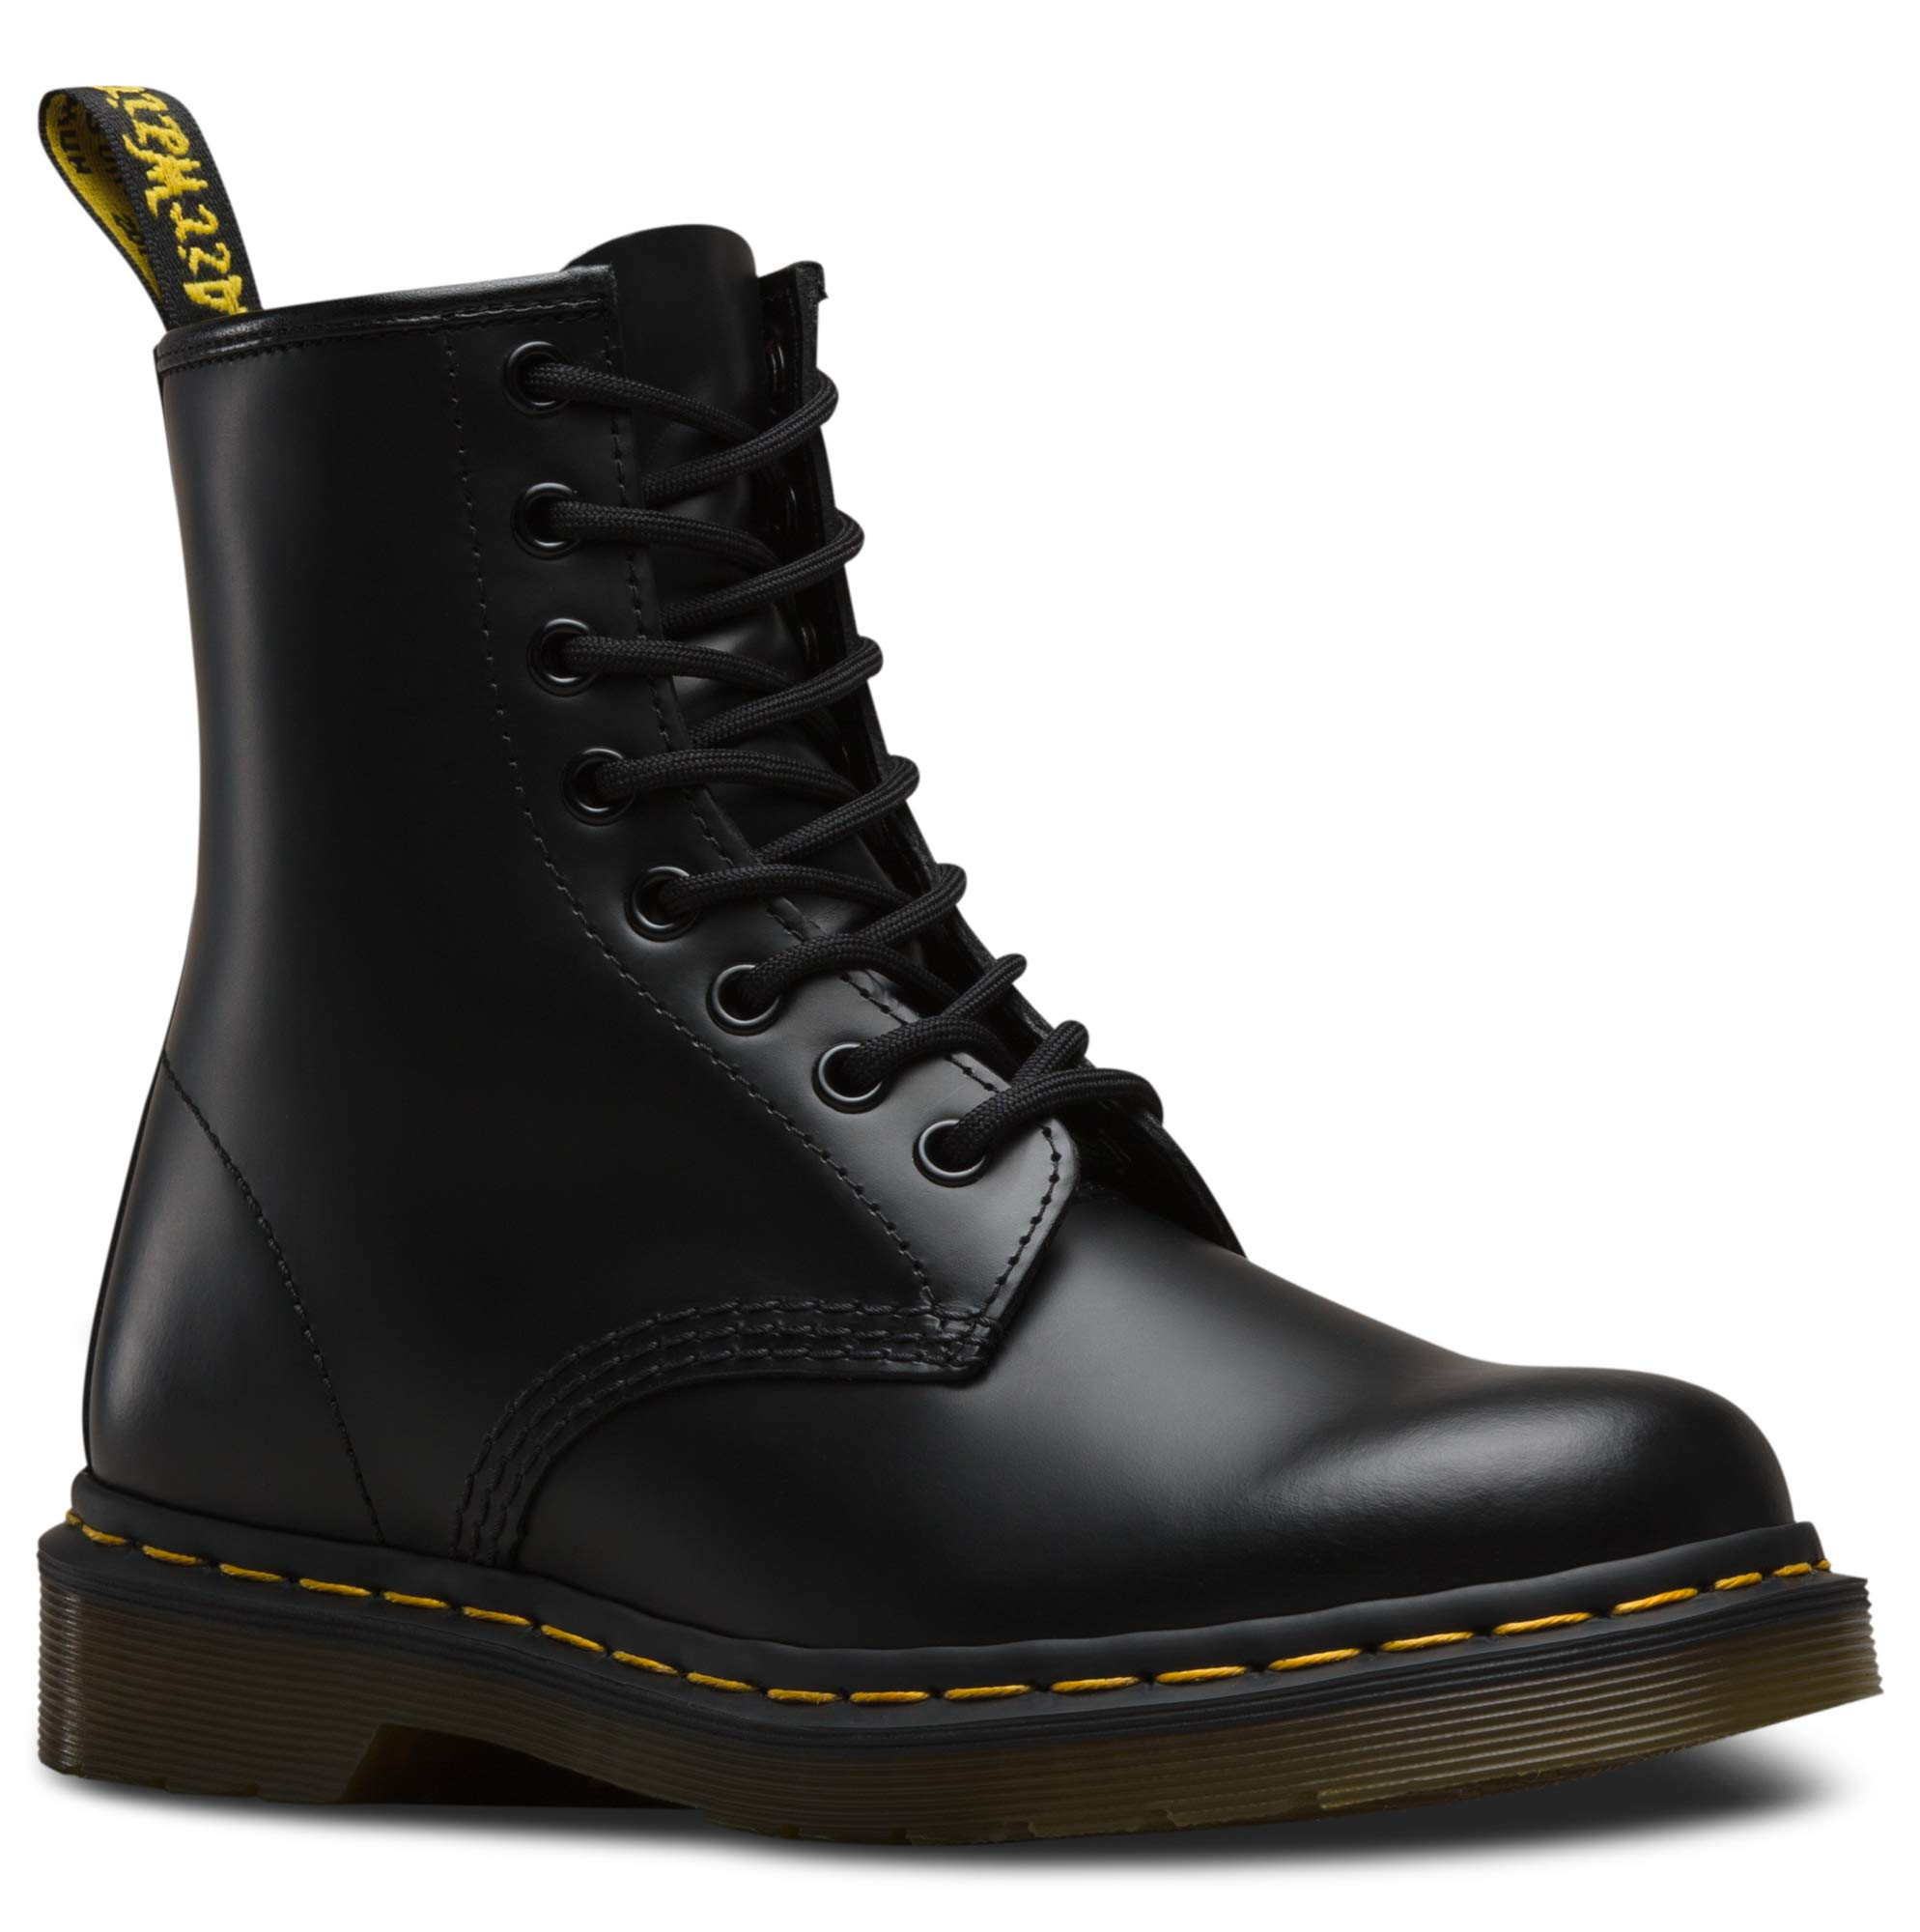 Dr. Martens 1460 Originals 8 Eye Lace Up Boot,Black Smooth Leather,6 UK (7 M US Mens / 8 M US Womens) by Dr. Martens